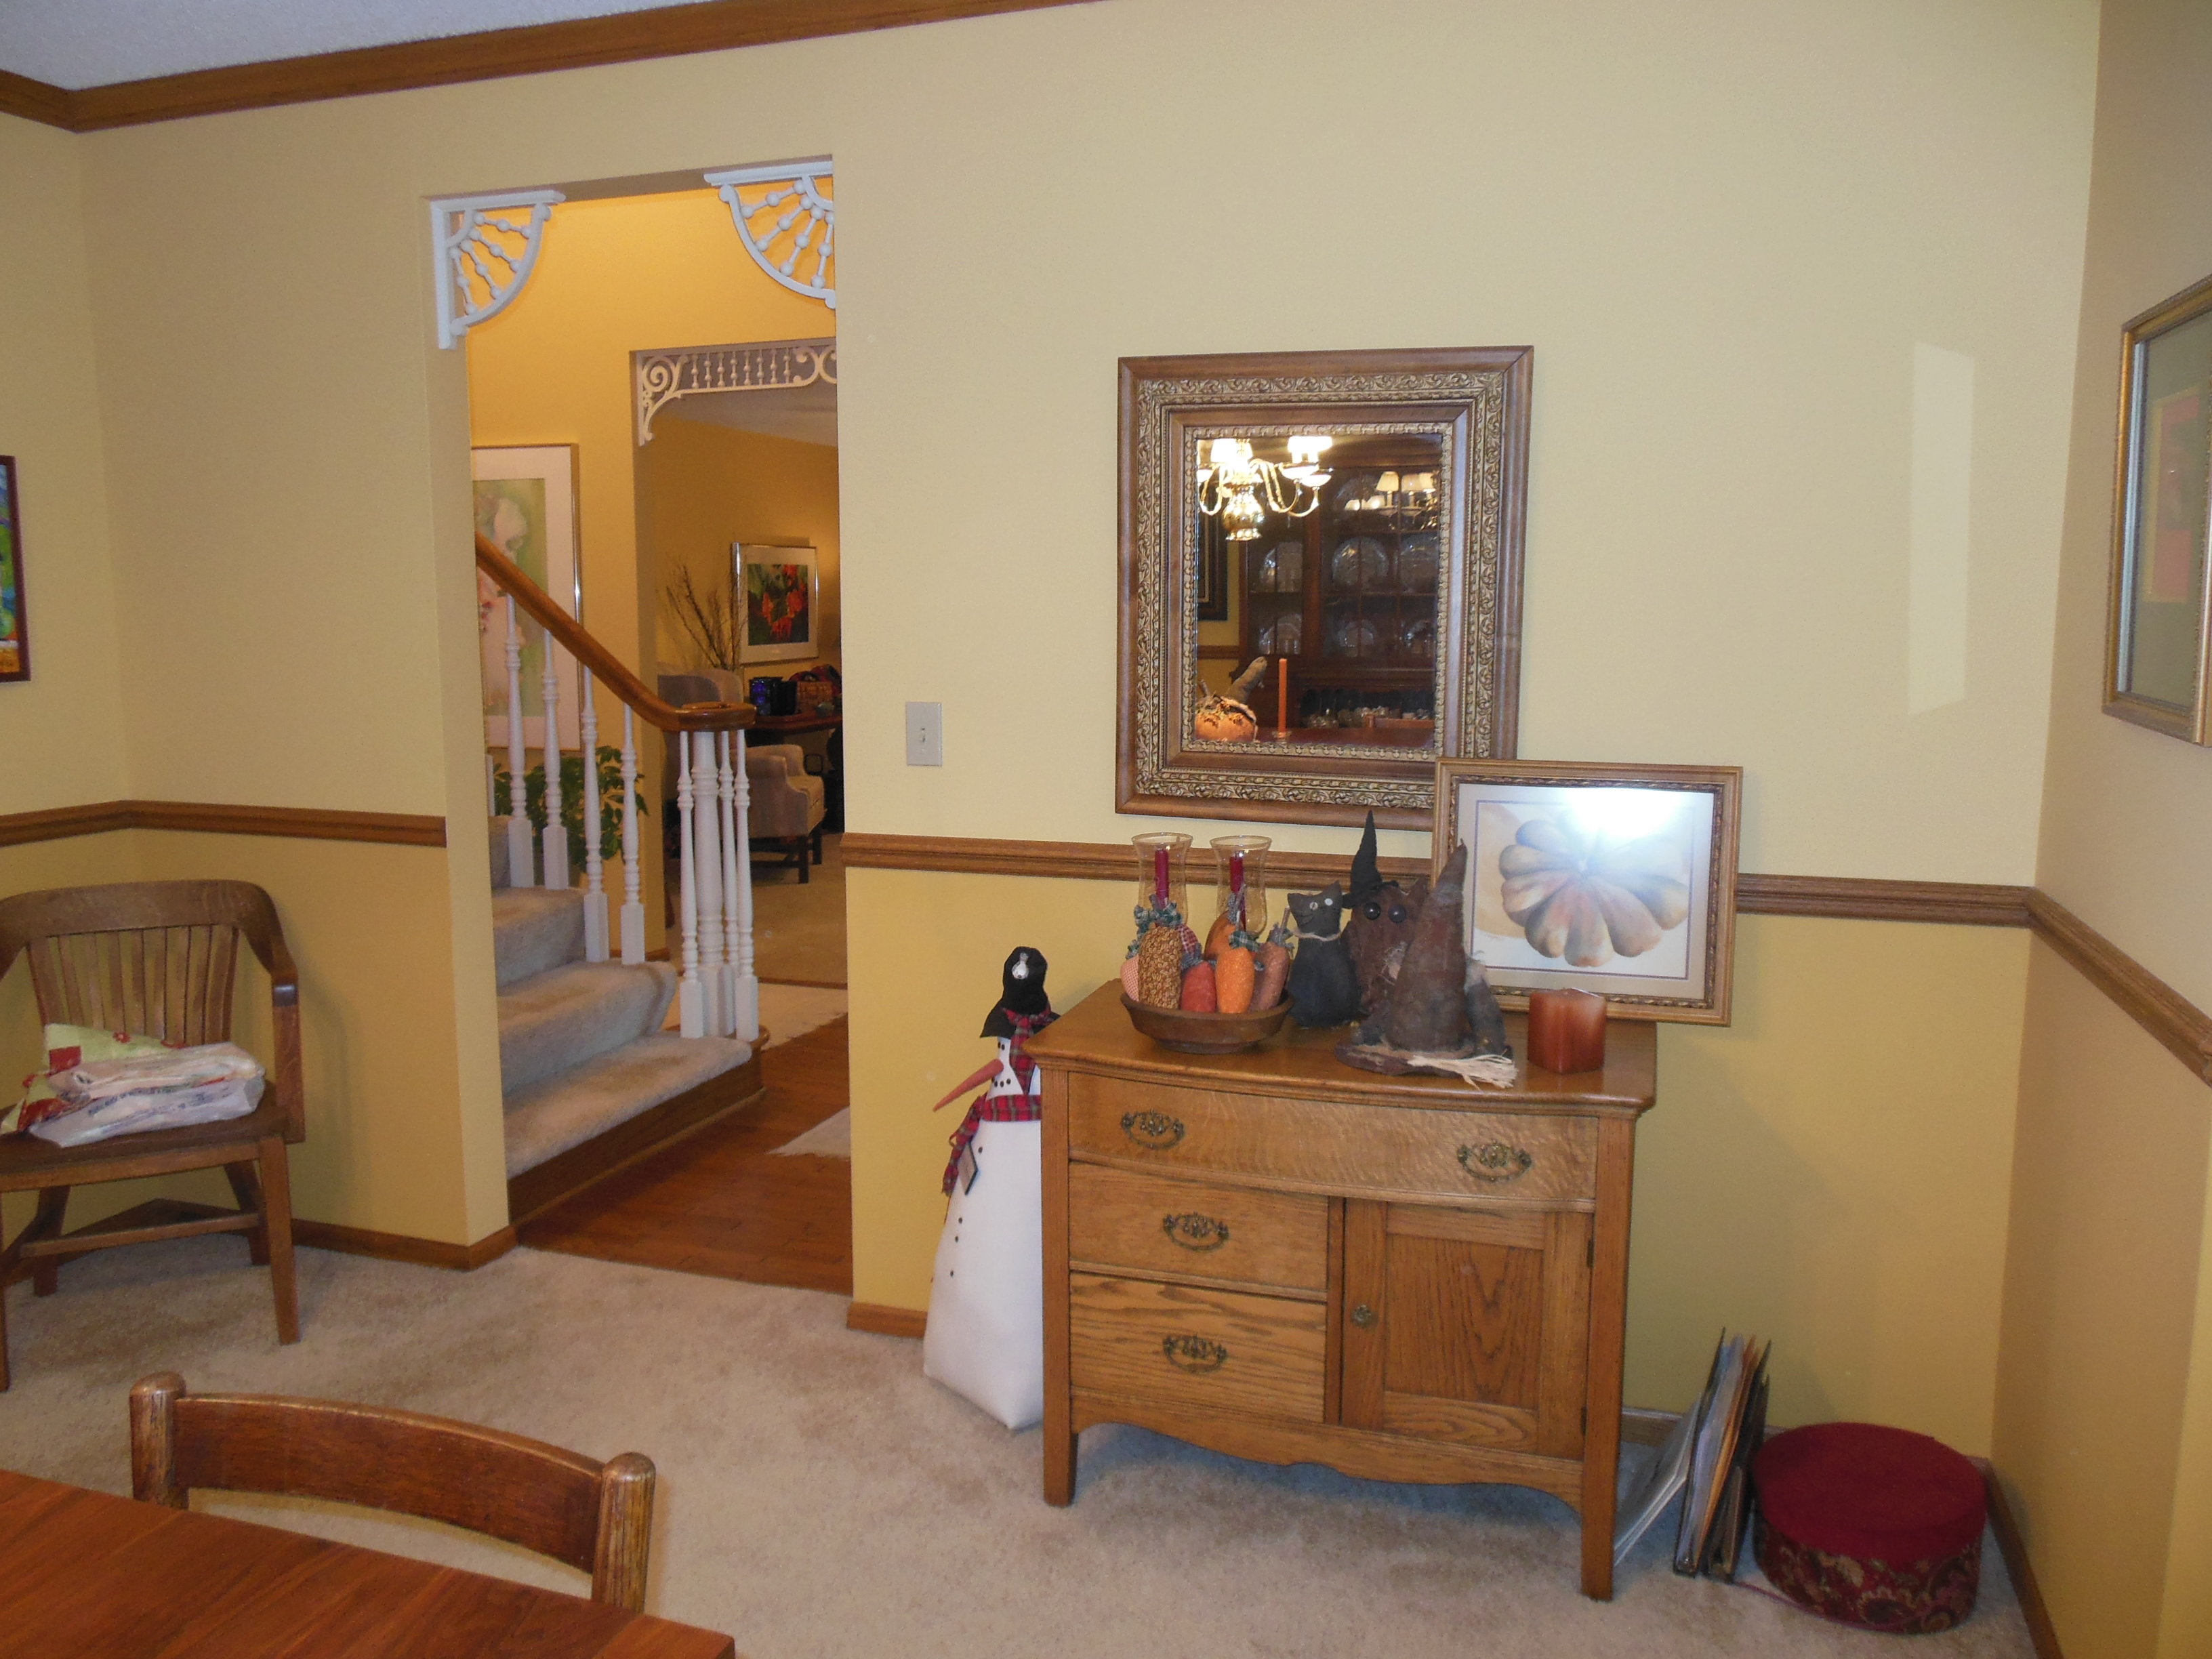 901 White St, dining room view 3